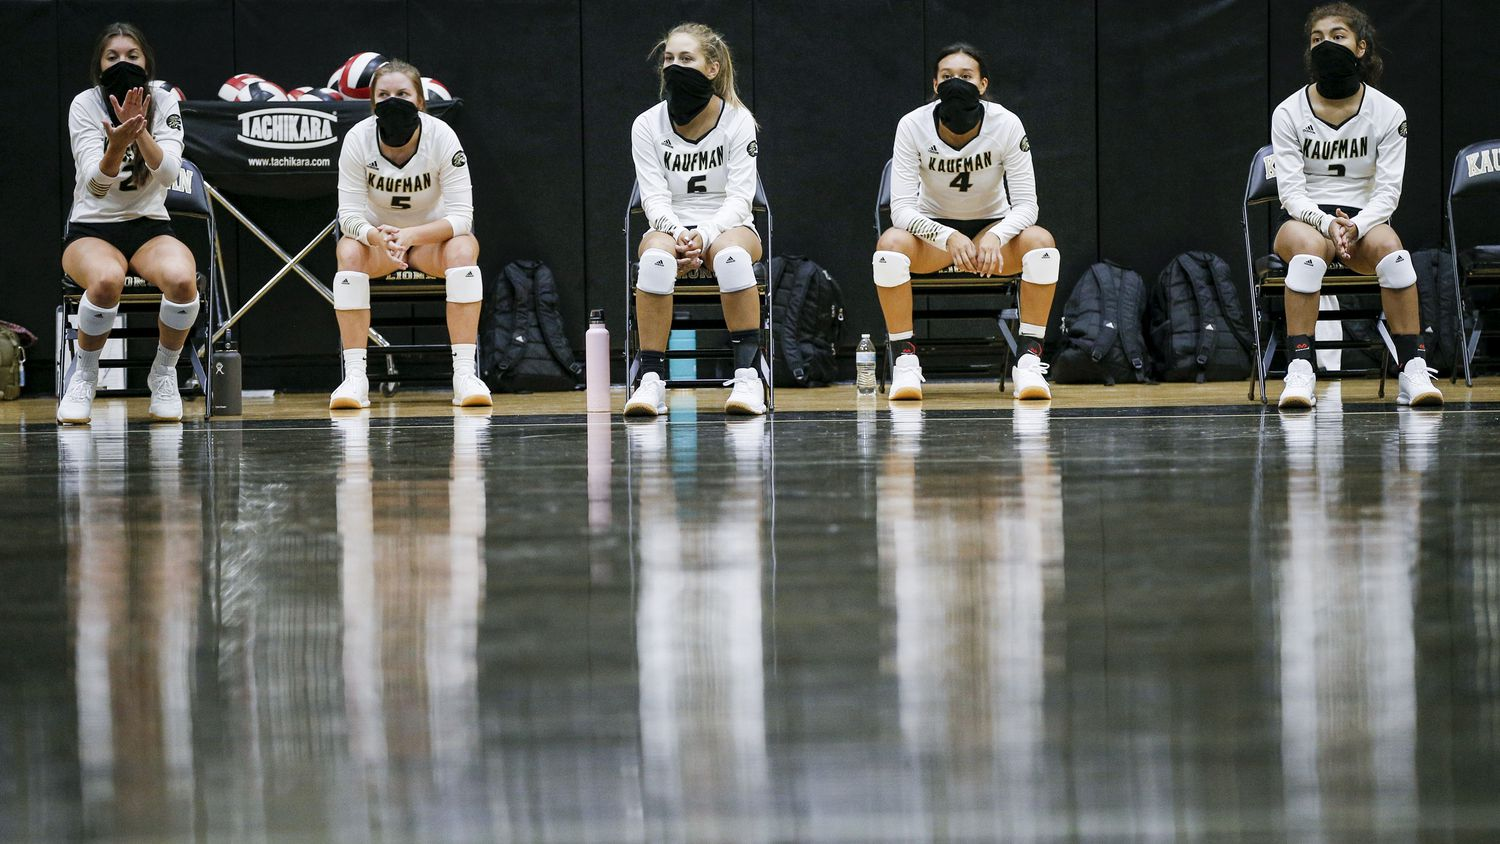 The Kaufman varsity volleyball reserve players wear masks while social distancing on the bench during a volleyball match against Lindale at Kaufman High School, Tuesday, August 11, 2020.